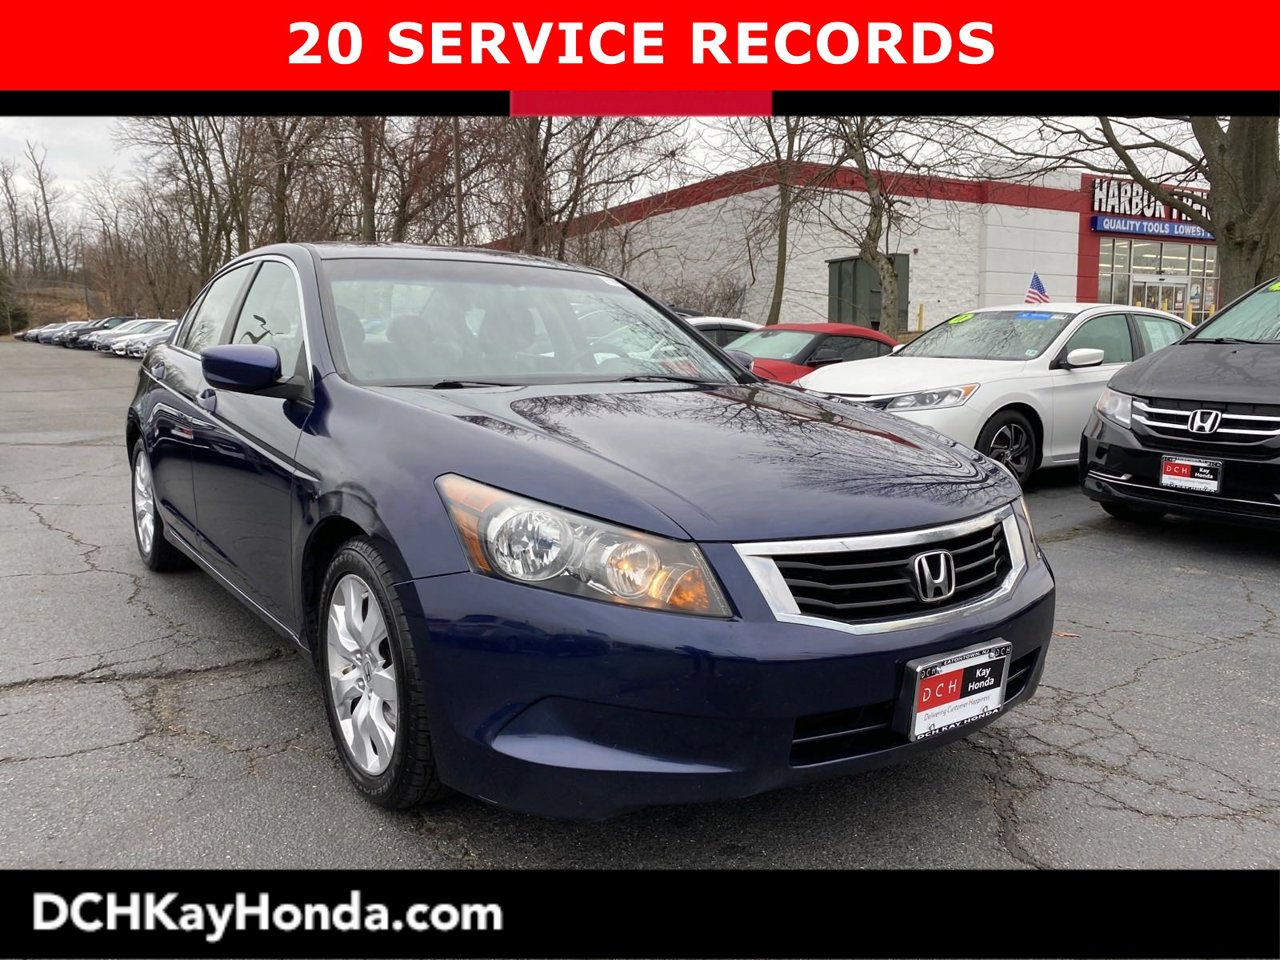 Used 2010 Honda Accord Sedan in Eatontown, NJ